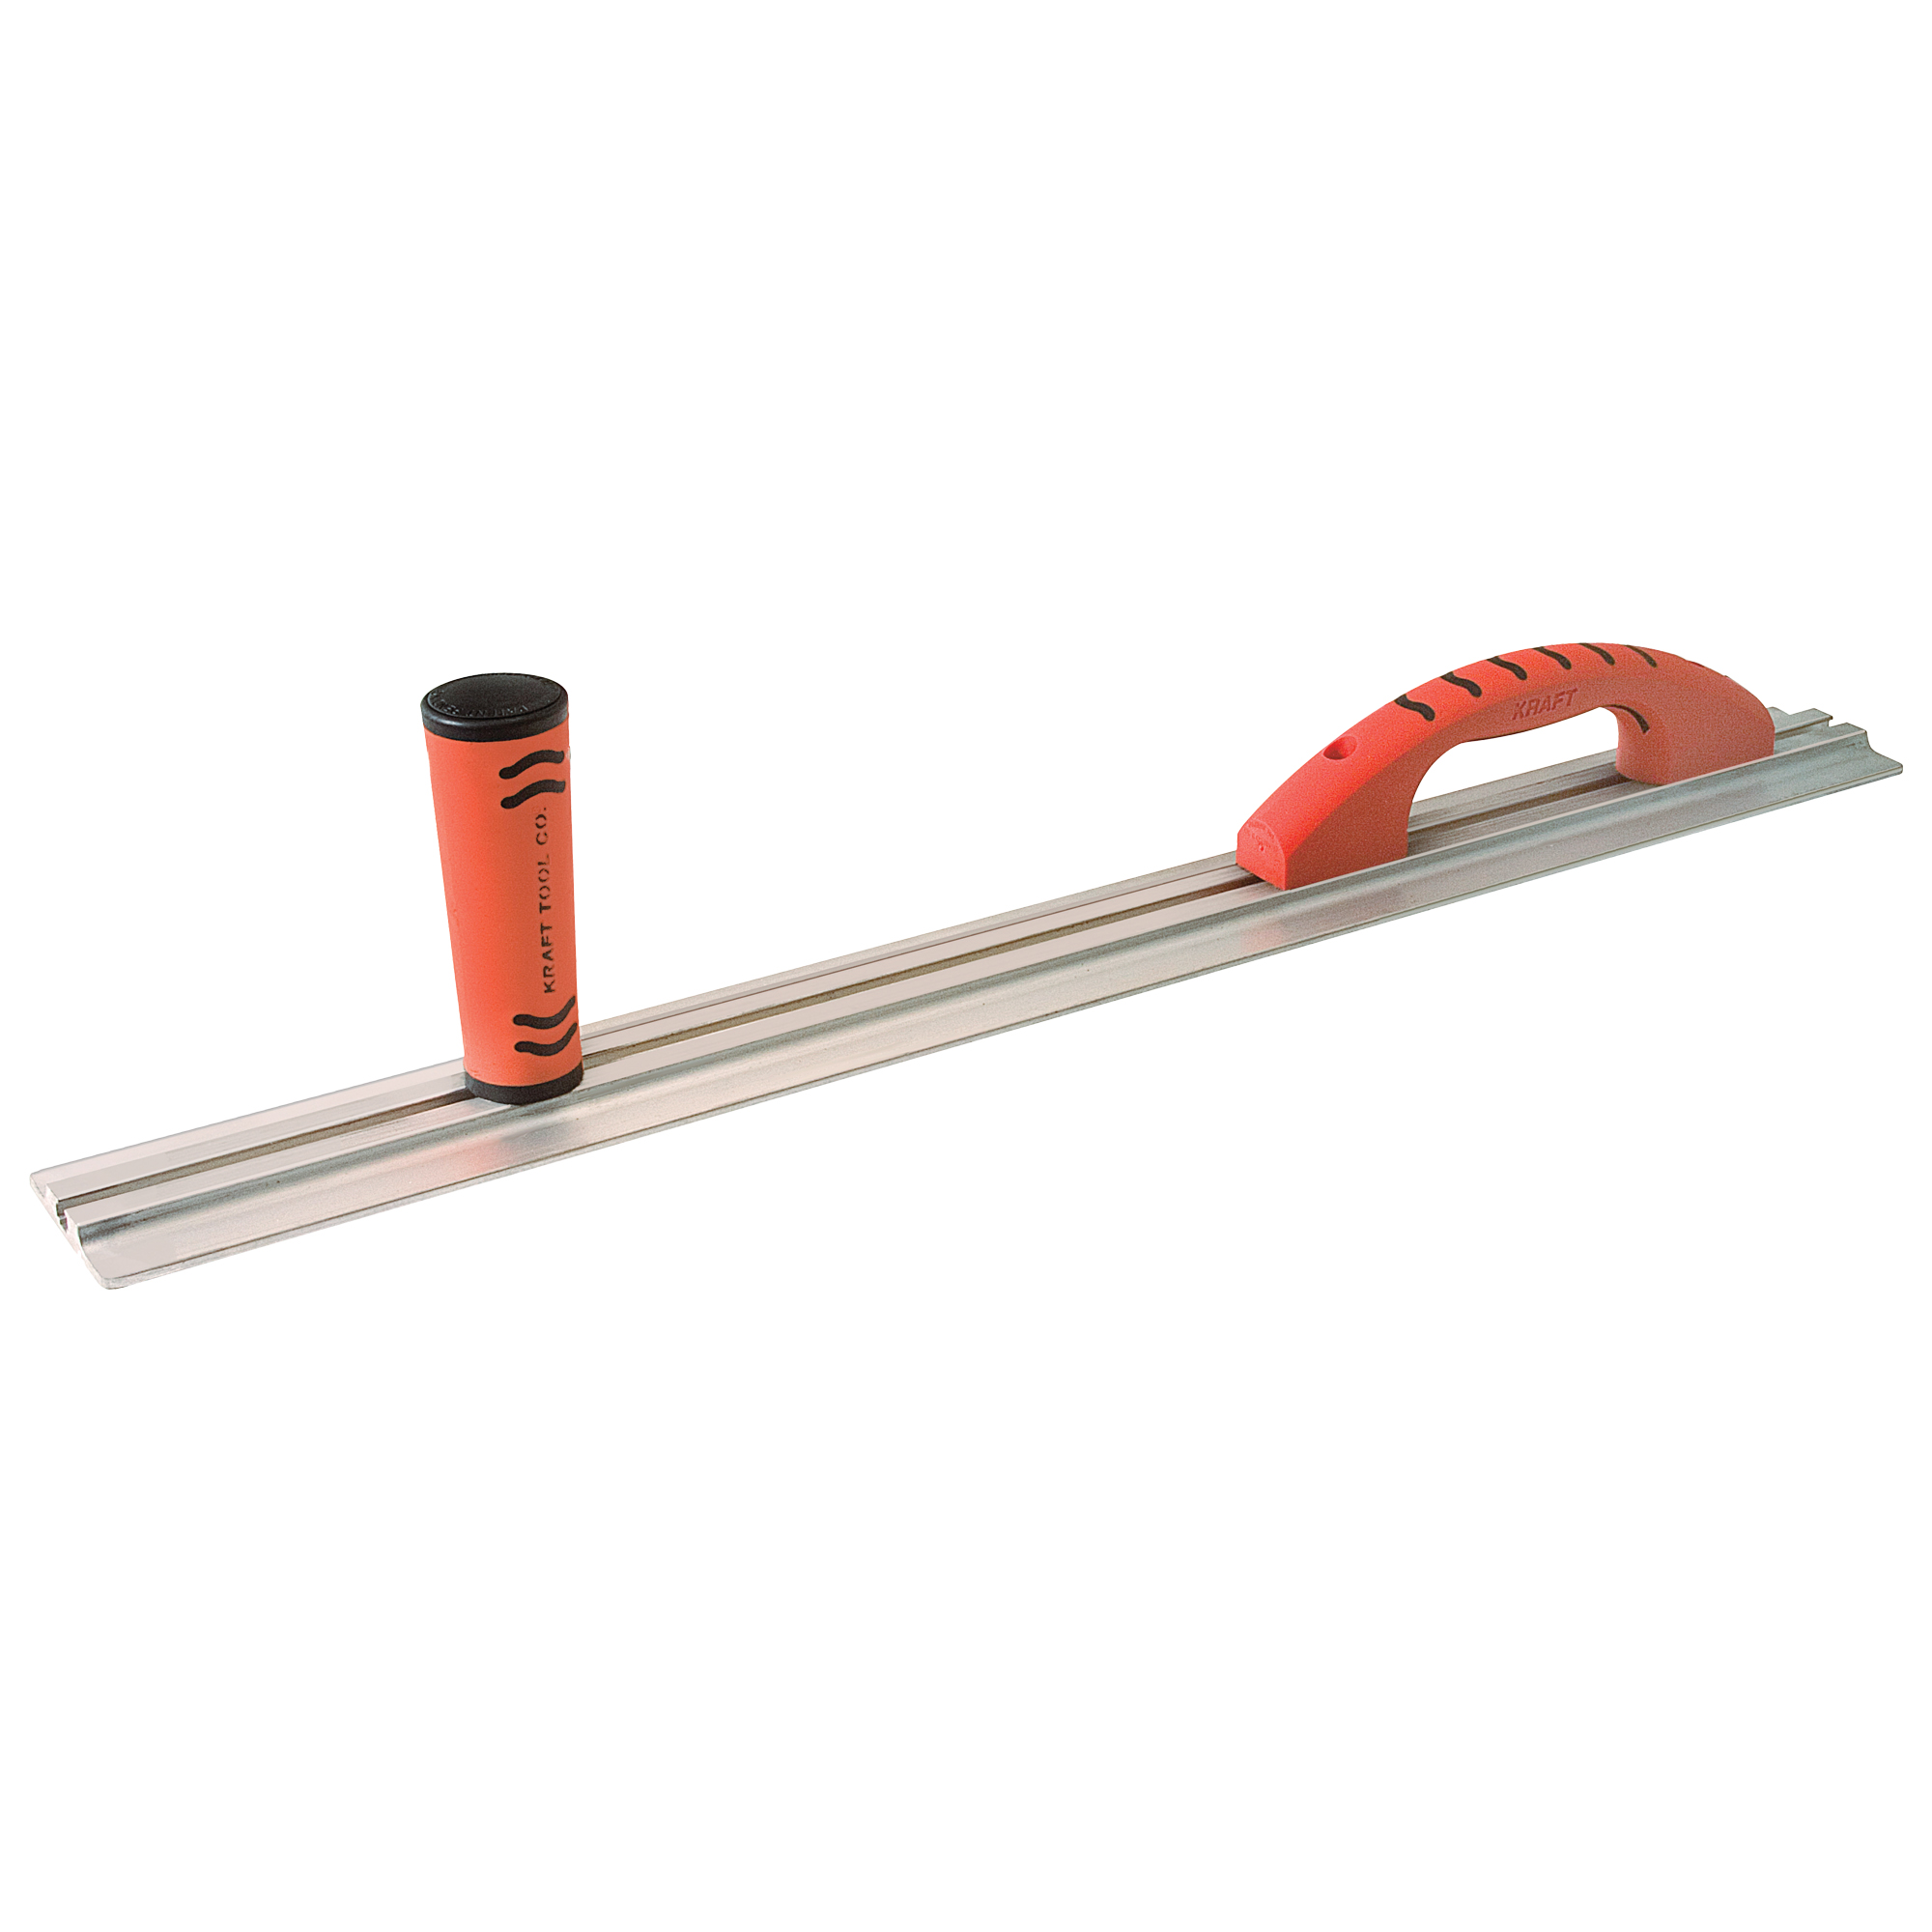 30inch X3-1/4inch Magnesium Darby With 1 Knob & 1 Proform Handle - Cf032pf - Tools Straight Edges Concrete CF032PF